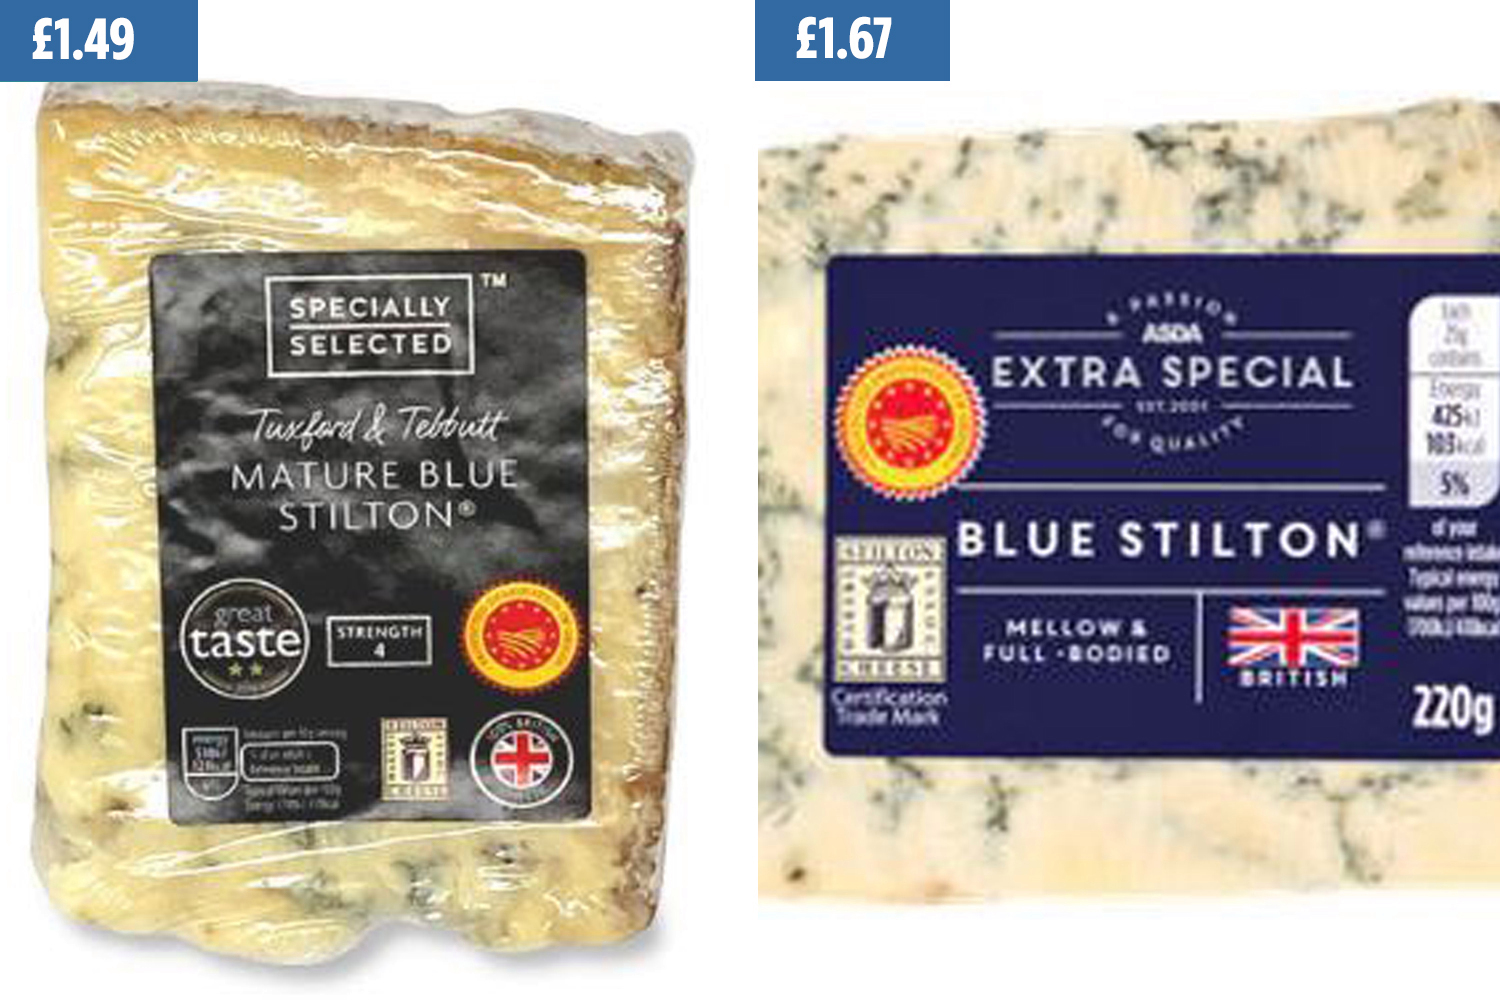 Aldi has priced its Mature Blue Stilton (right) at £1.49 while Asda charges £1.67 (right)